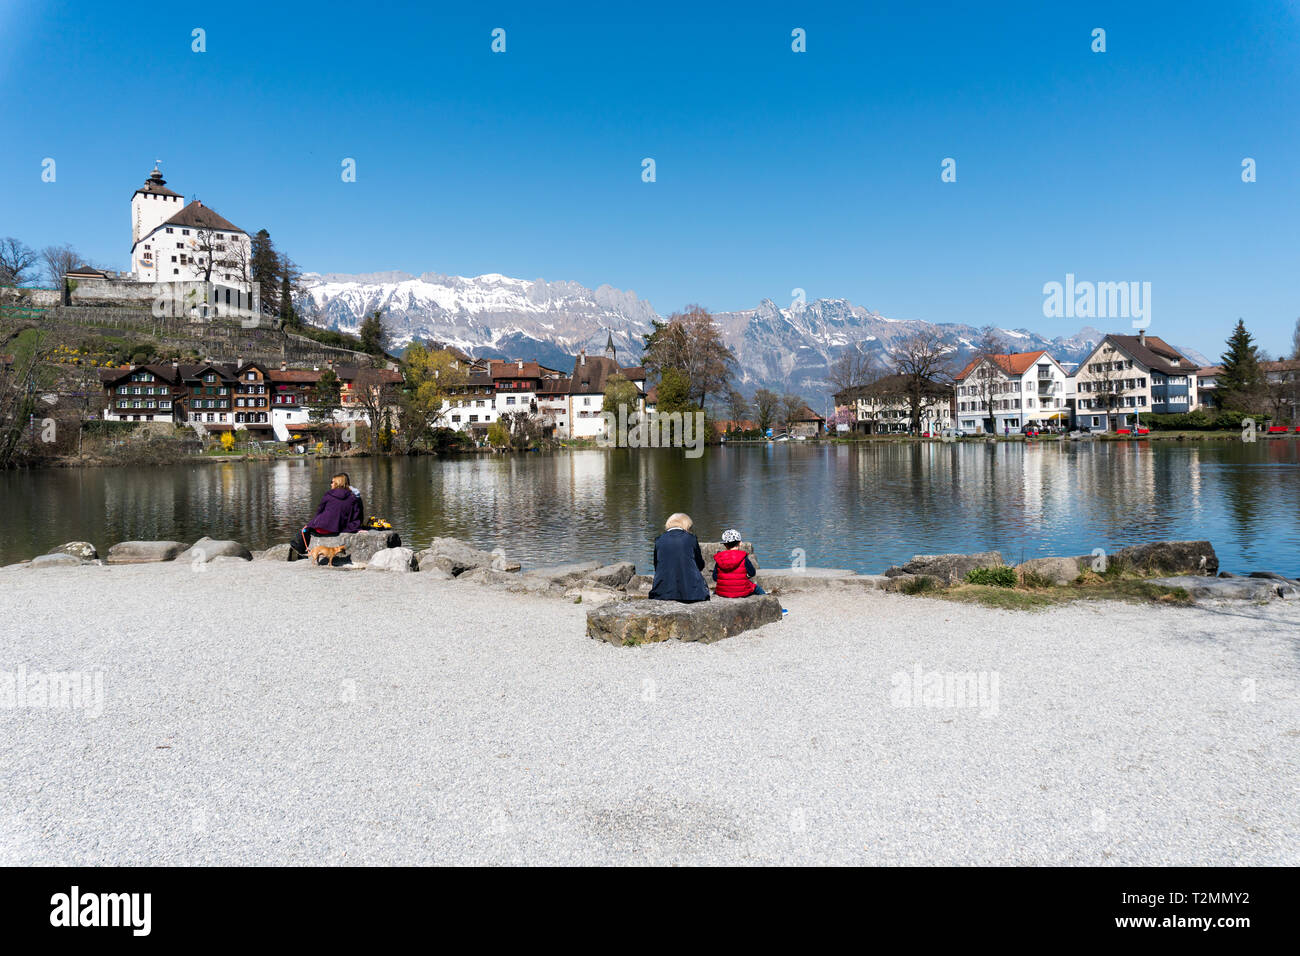 Werdenberg, SG / Switzerland - March 31, 2019: tourists enjoy a visit to idyllic and historic Werdenberg village and lake with a great view of the Swi - Stock Image